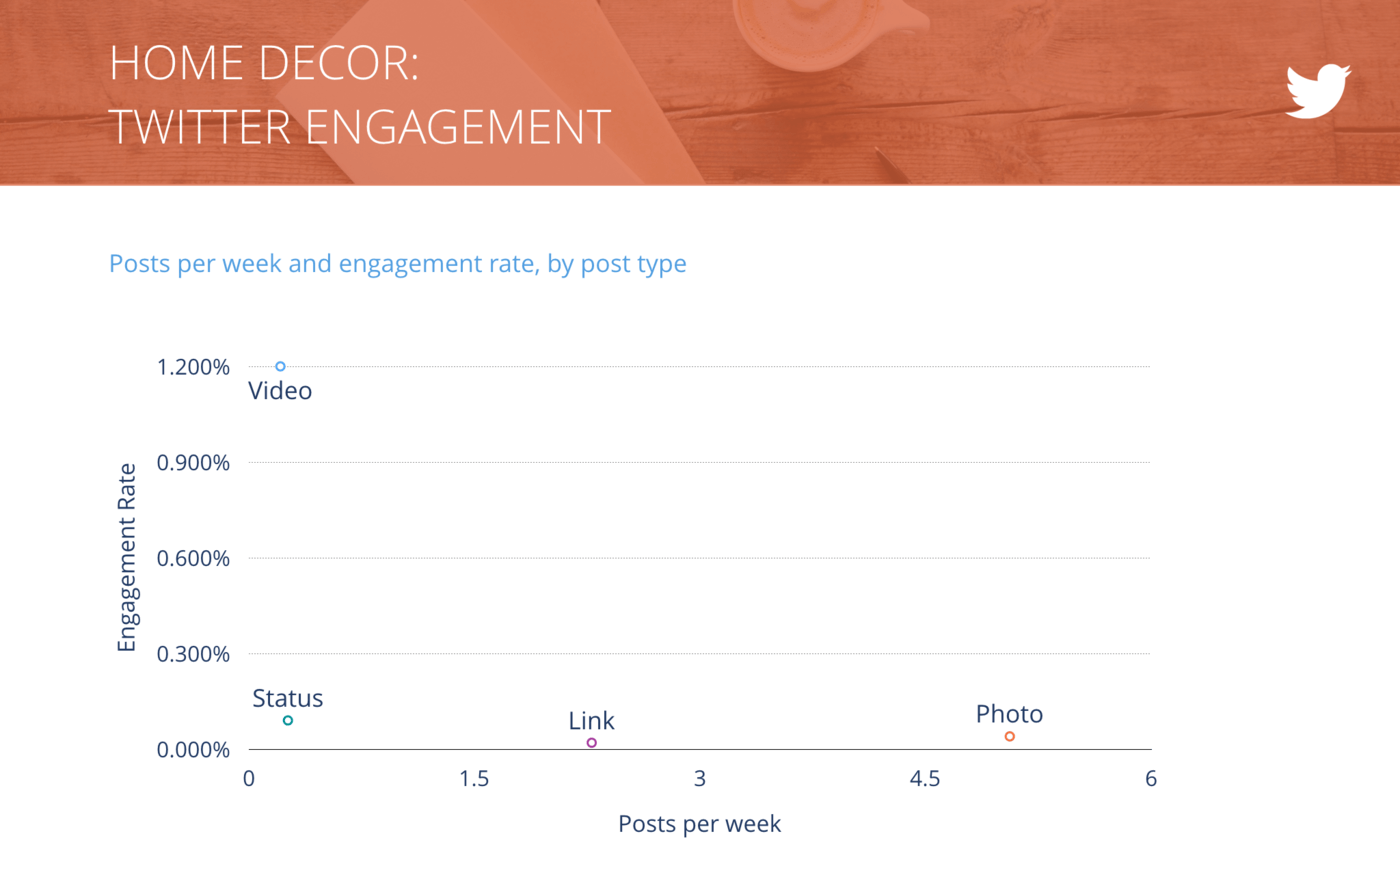 slide for Tweets per Week vs. Engagement Rate per Tweet, Home Decor